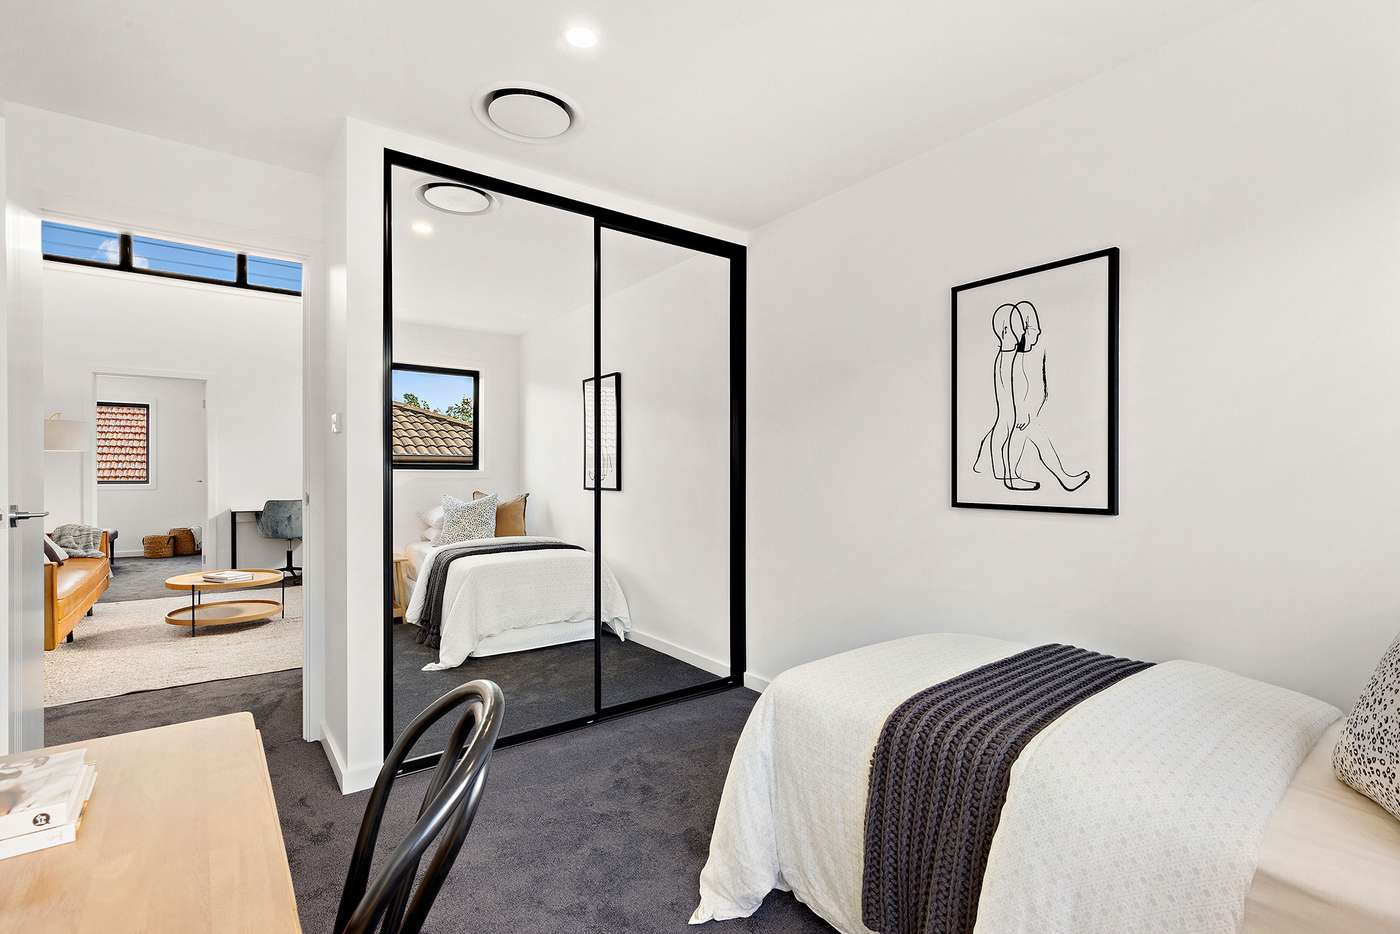 Sixth view of Homely townhouse listing, 3/17 High Street, Waratah NSW 2298